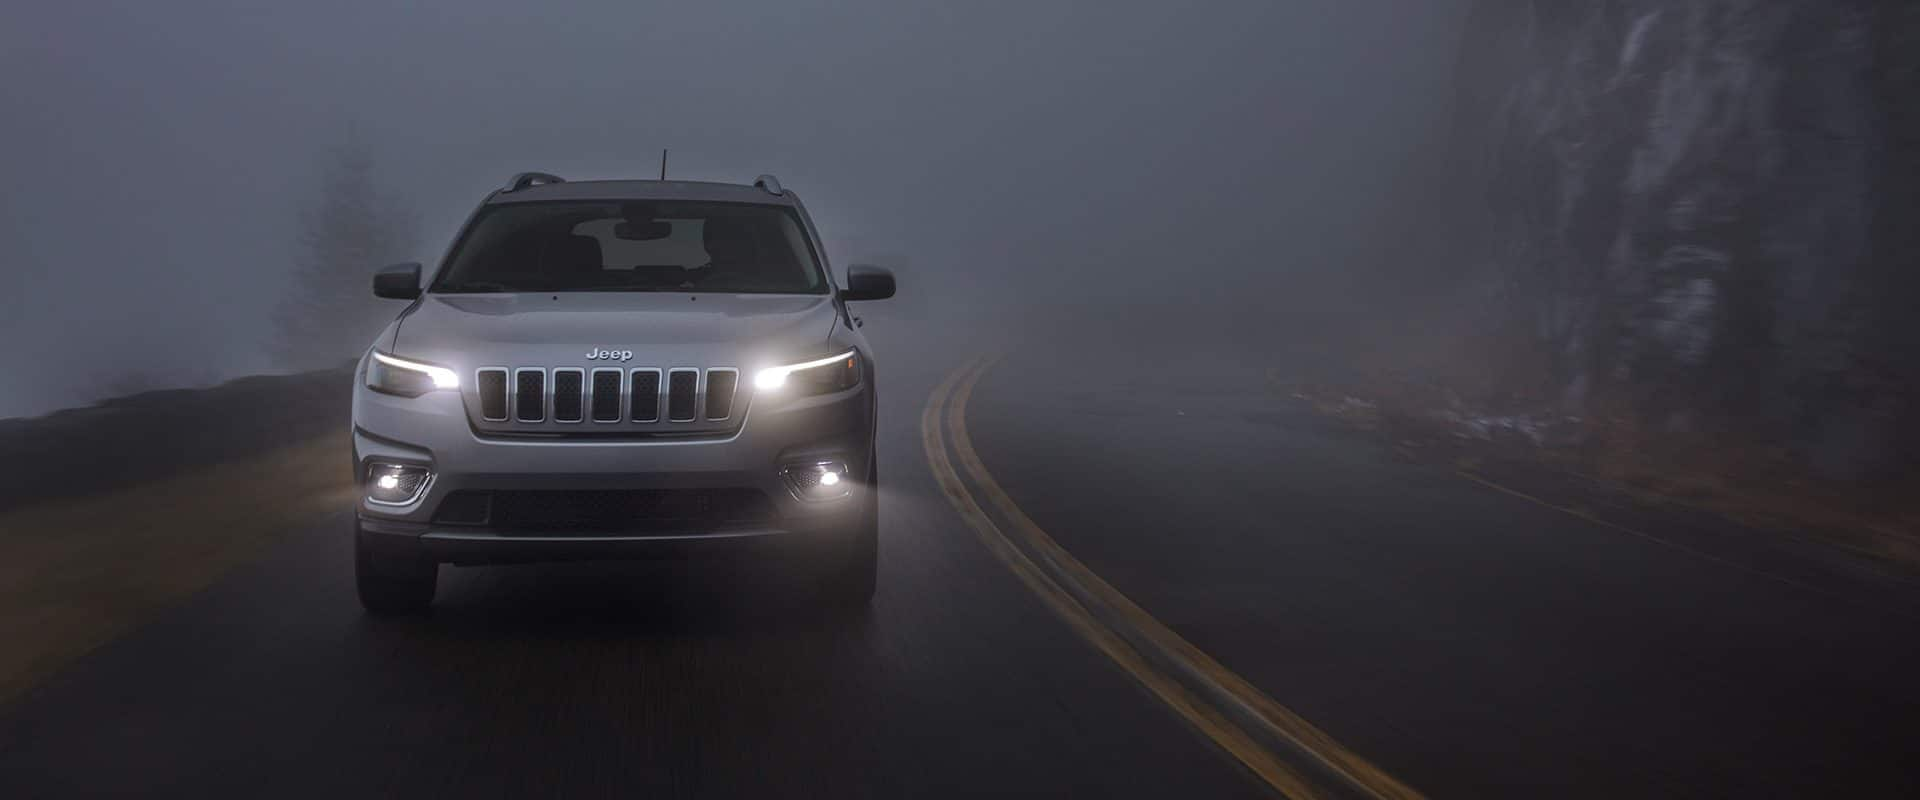 2019-Jeep-Cherokee-Latitude-Plus-Safety-and-Security-Hero